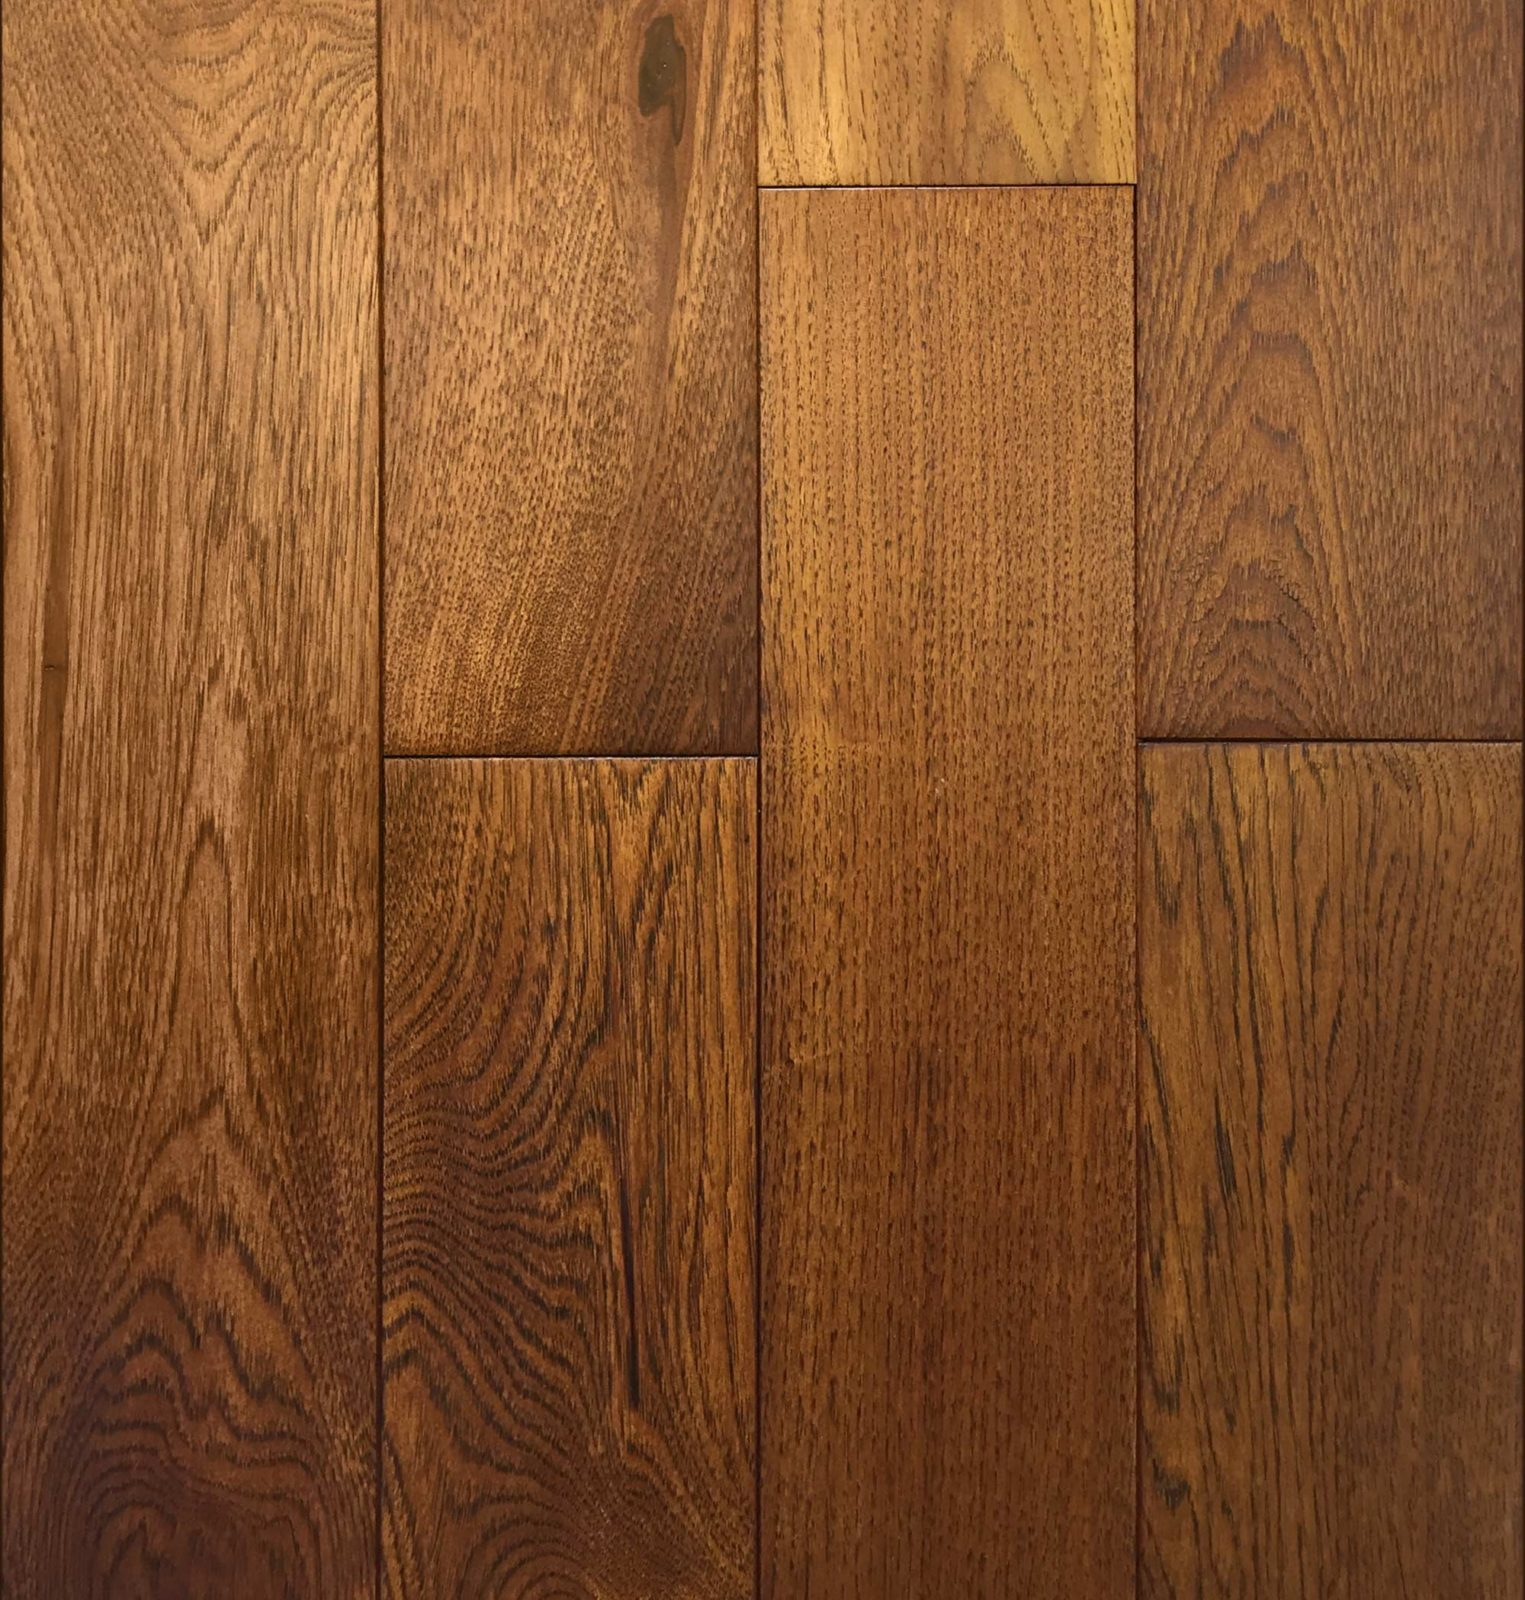 Engineered hickory hardwood flooring gurus floor for Hardwood floors hickory